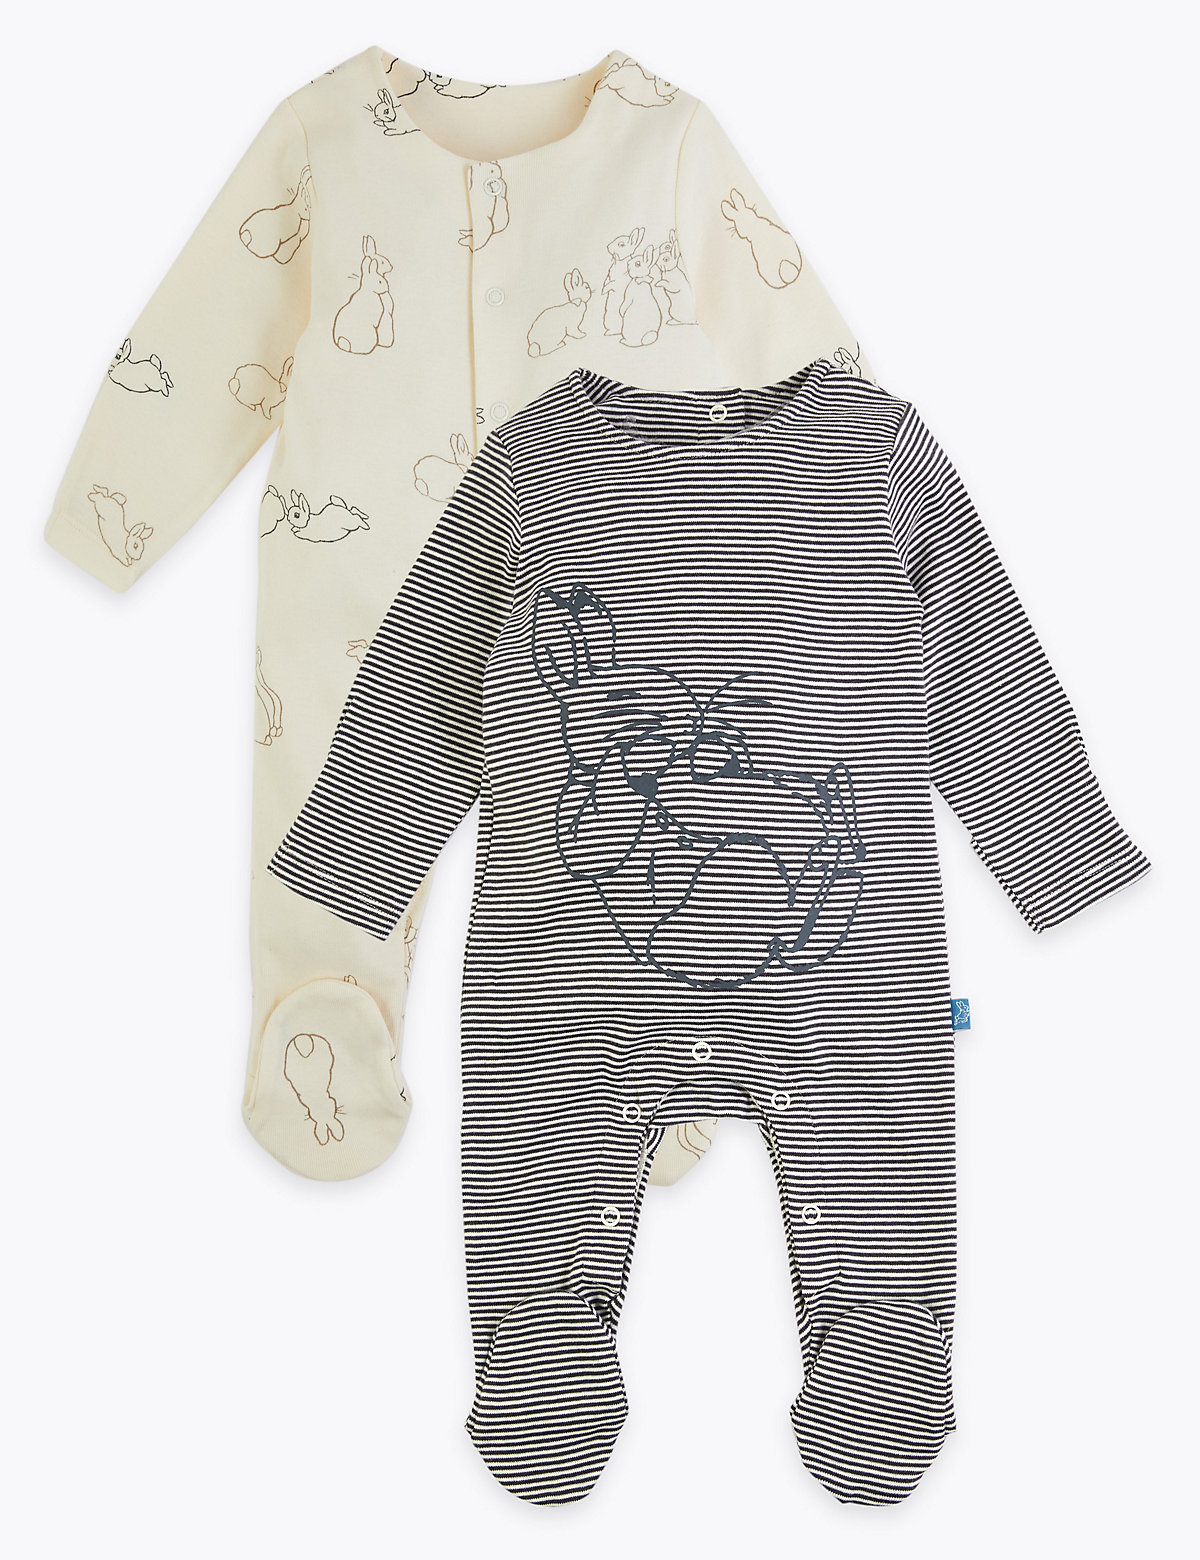 2 Pack Peter Rabbit Sleepsuits (7lbs-3 Yrs)